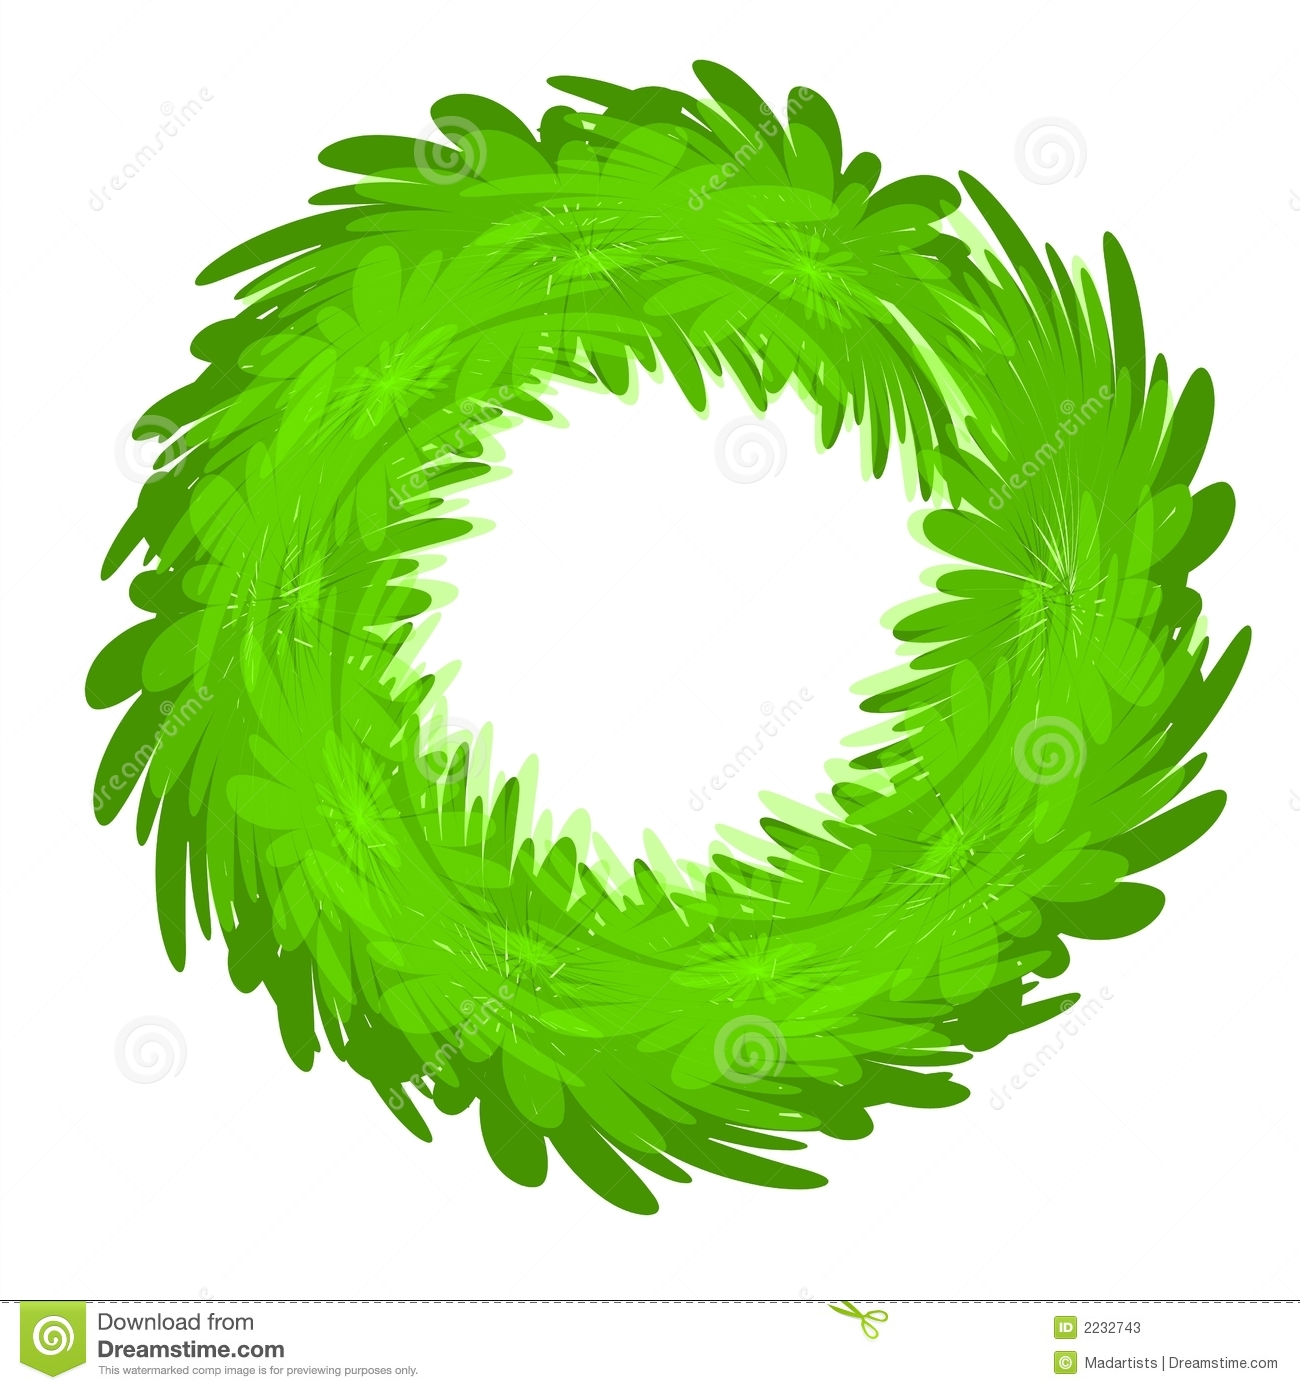 Sometimes all you want is a basic blank green wreath to add your own ...